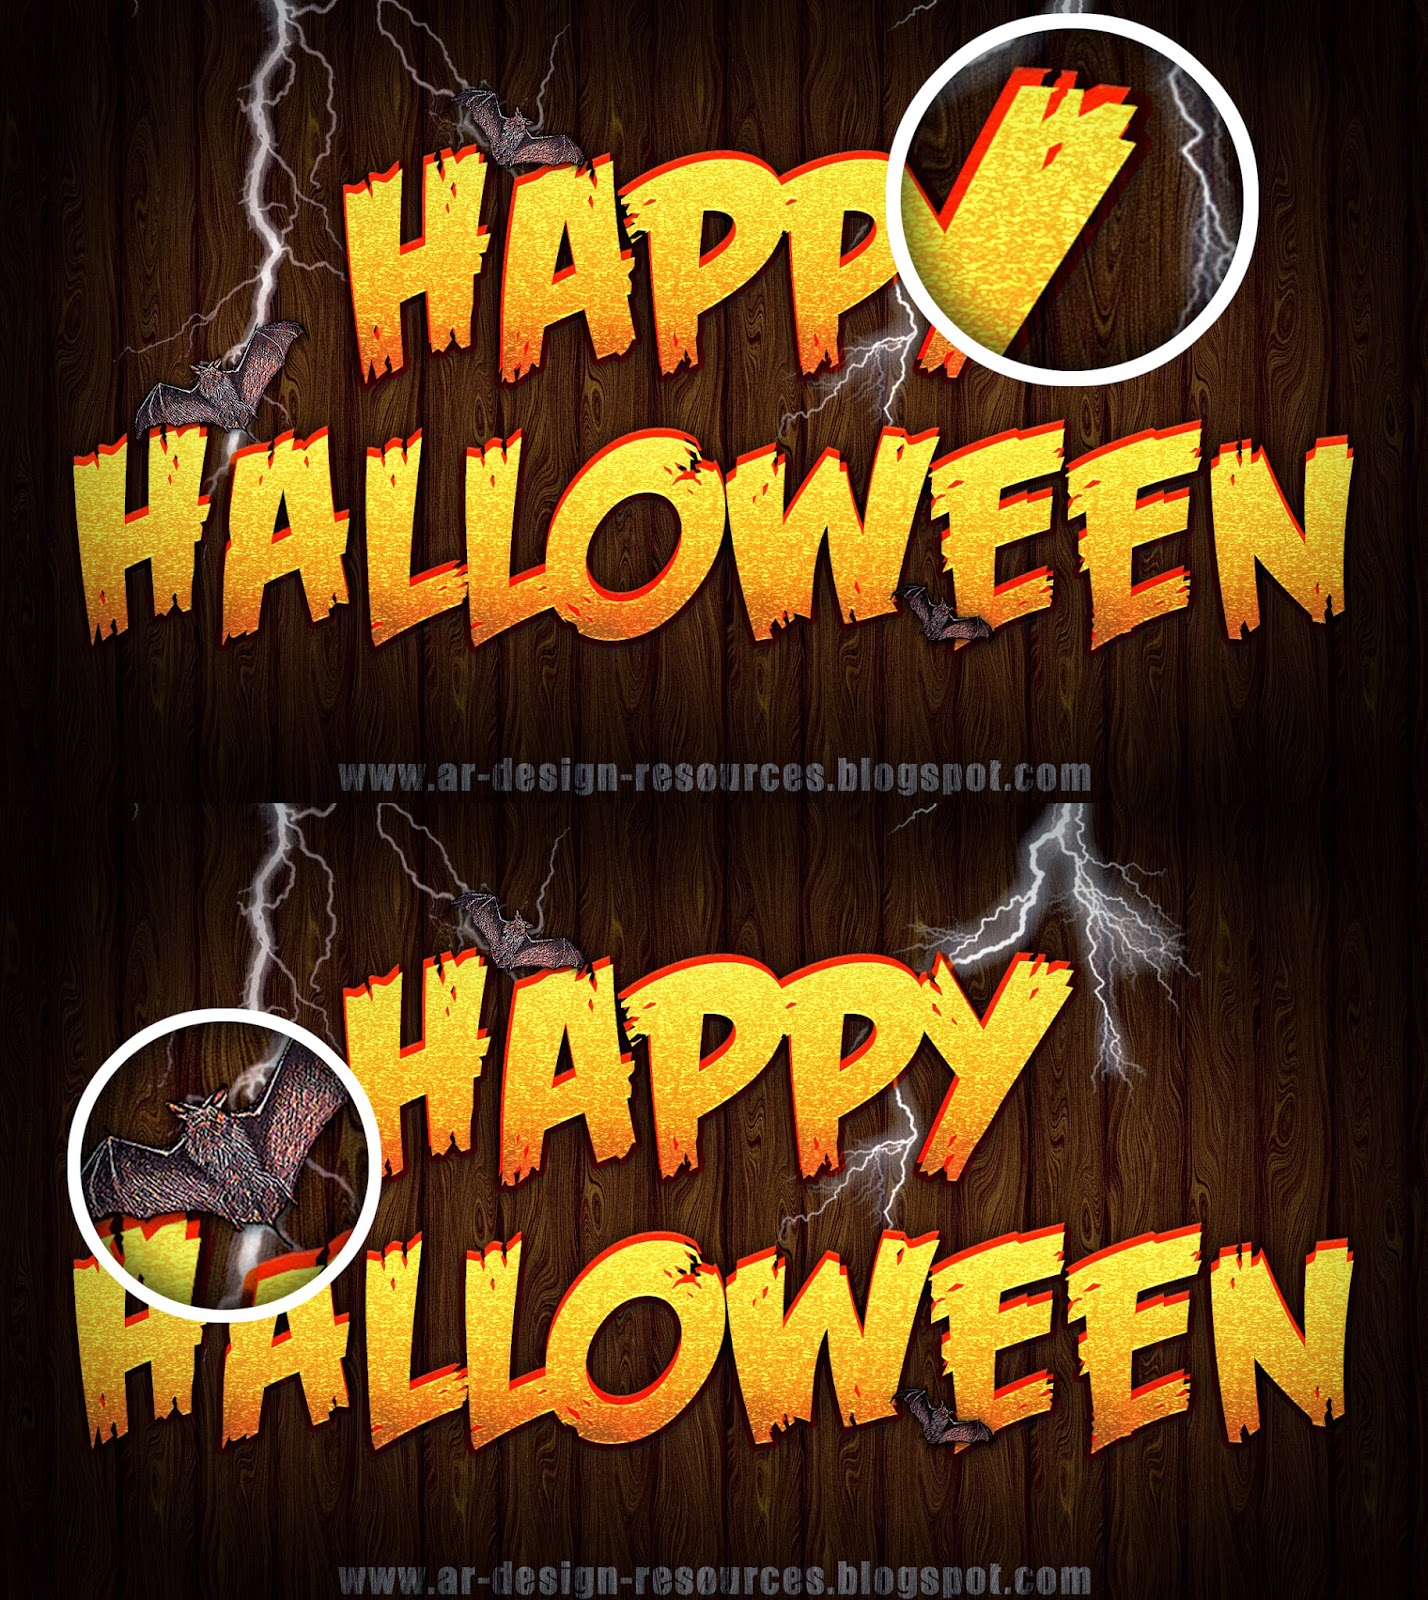 http://3.bp.blogspot.com/-3ma7m46FHIc/VEFVkyWlJXI/AAAAAAAABA8/LfBiMBd4_jw/s1600/Happy-Halloween_TEXT-EFFECT_Ar-Design-Resources_PRV.jpg